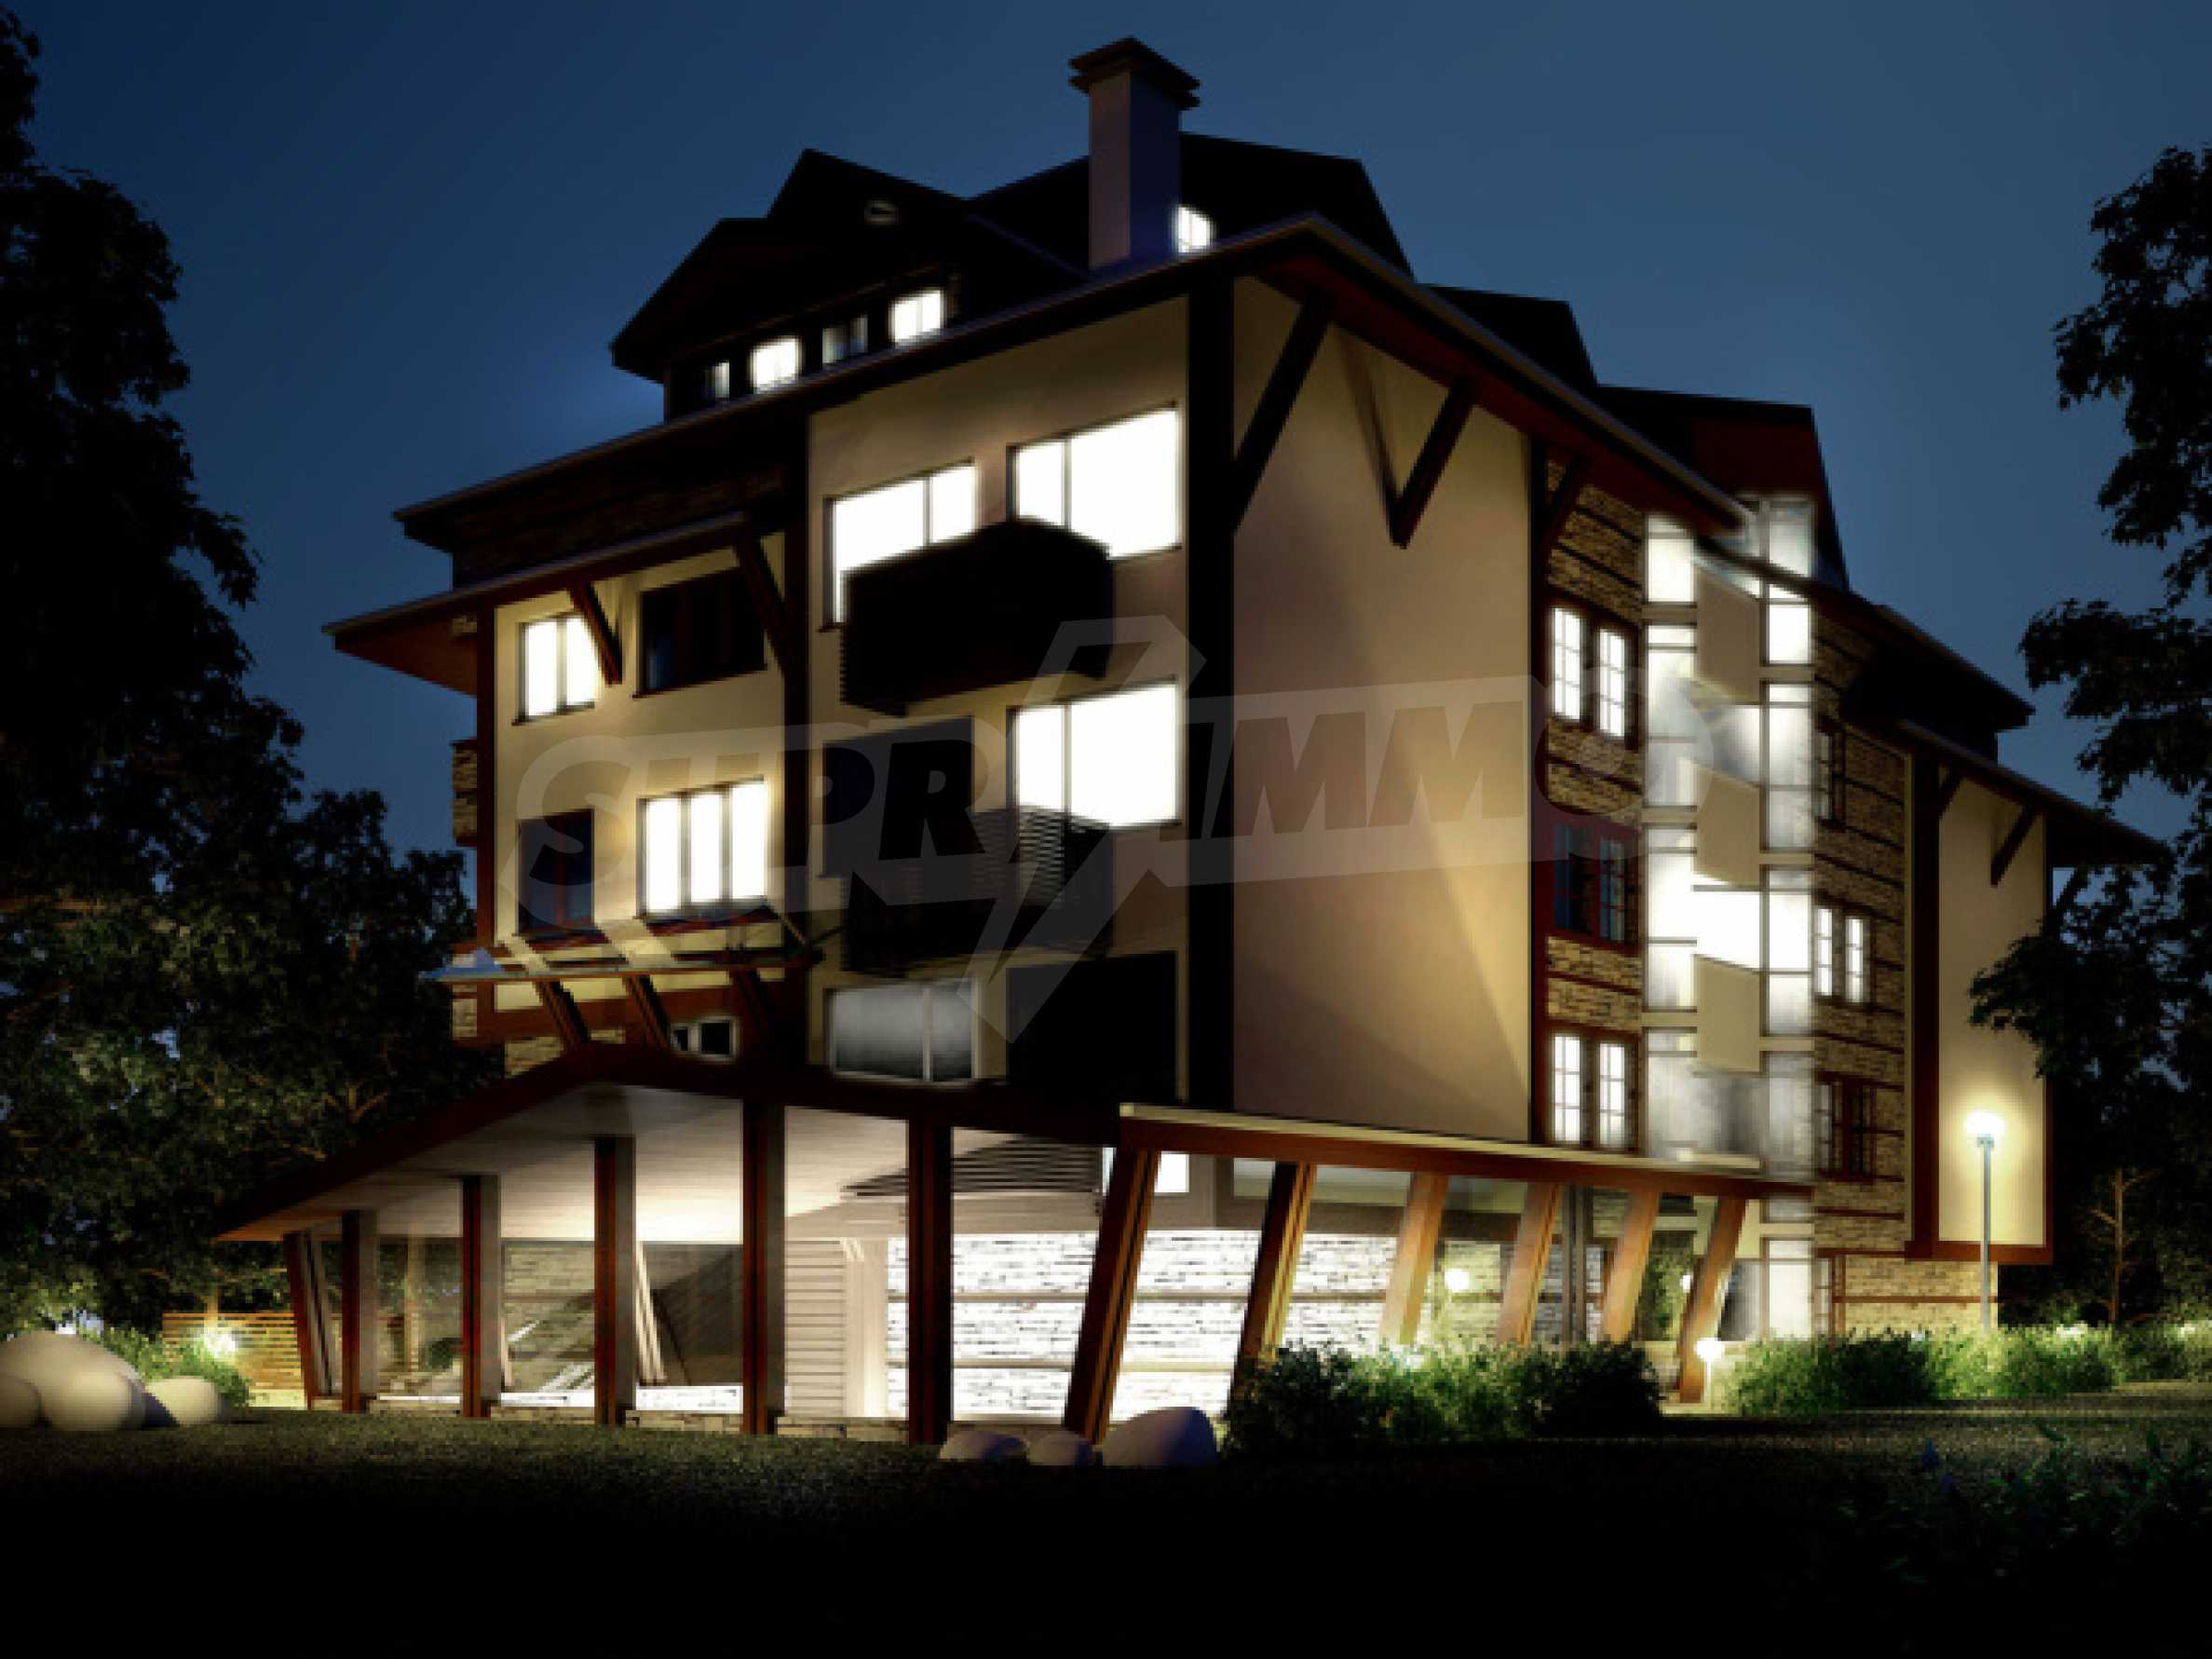 Chateau Blanc: Probably the best investment opportunity in Bansko... 5